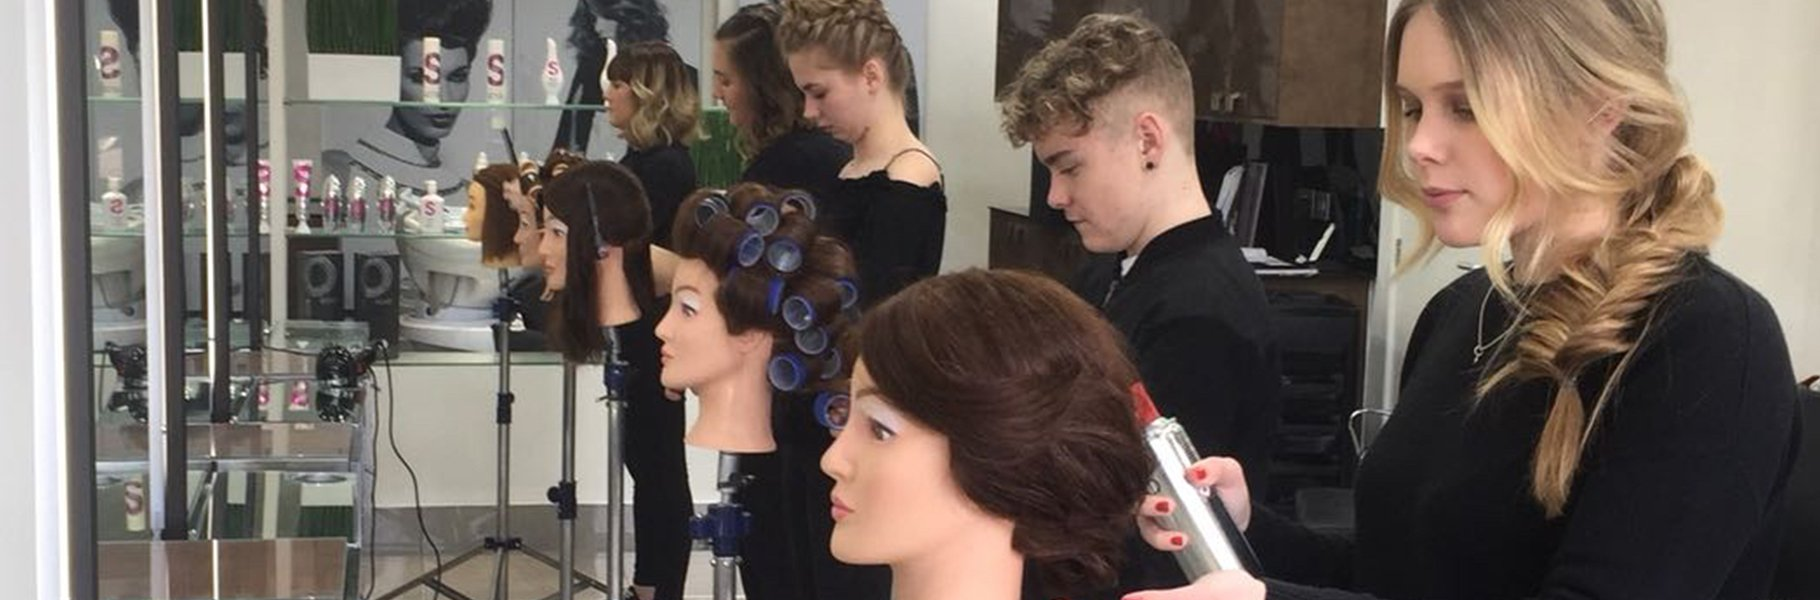 Apprentices at the Forresters Hairdressing Training Academy